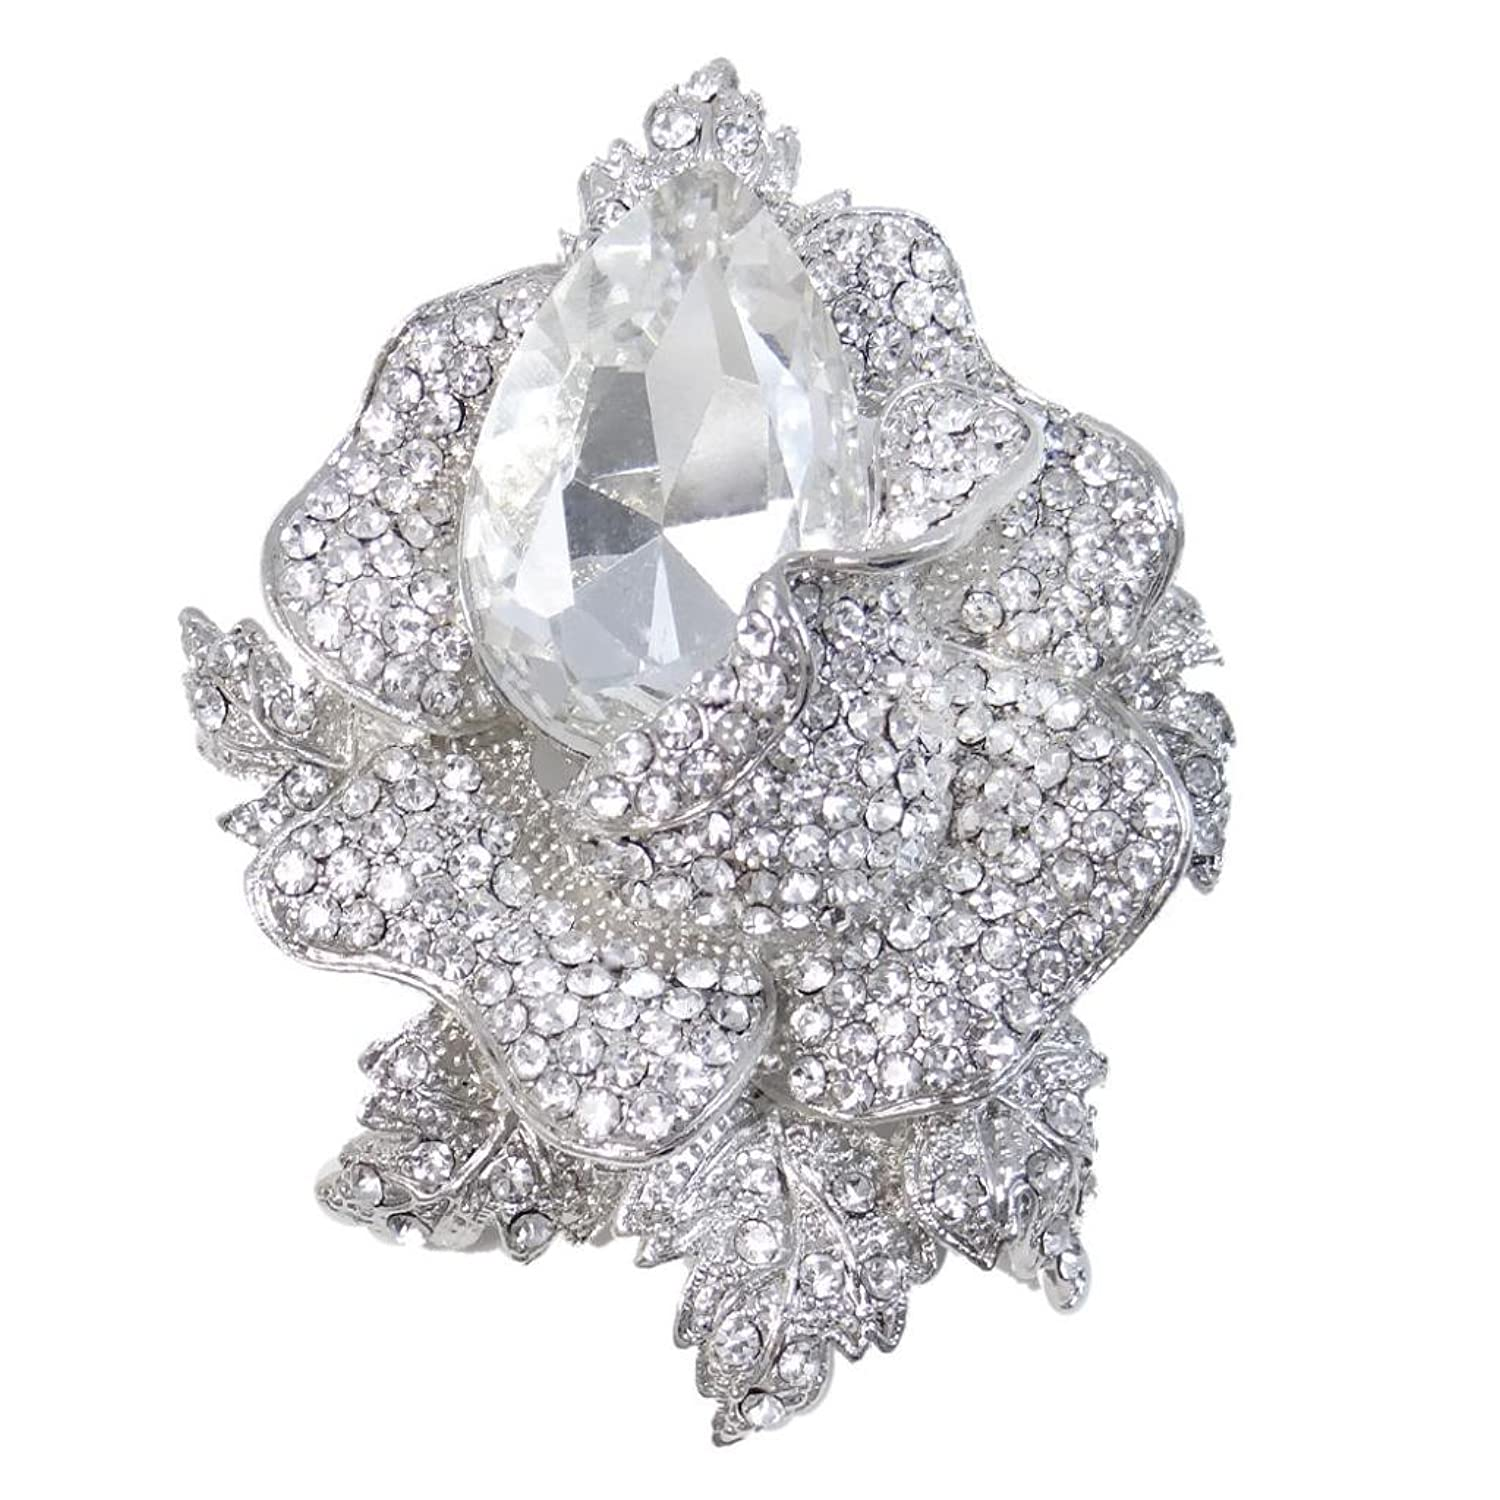 EVER FAITH Austrian Crystal Wedding Rose Flower Bud Pendant Brooch Clear Silver-Tone